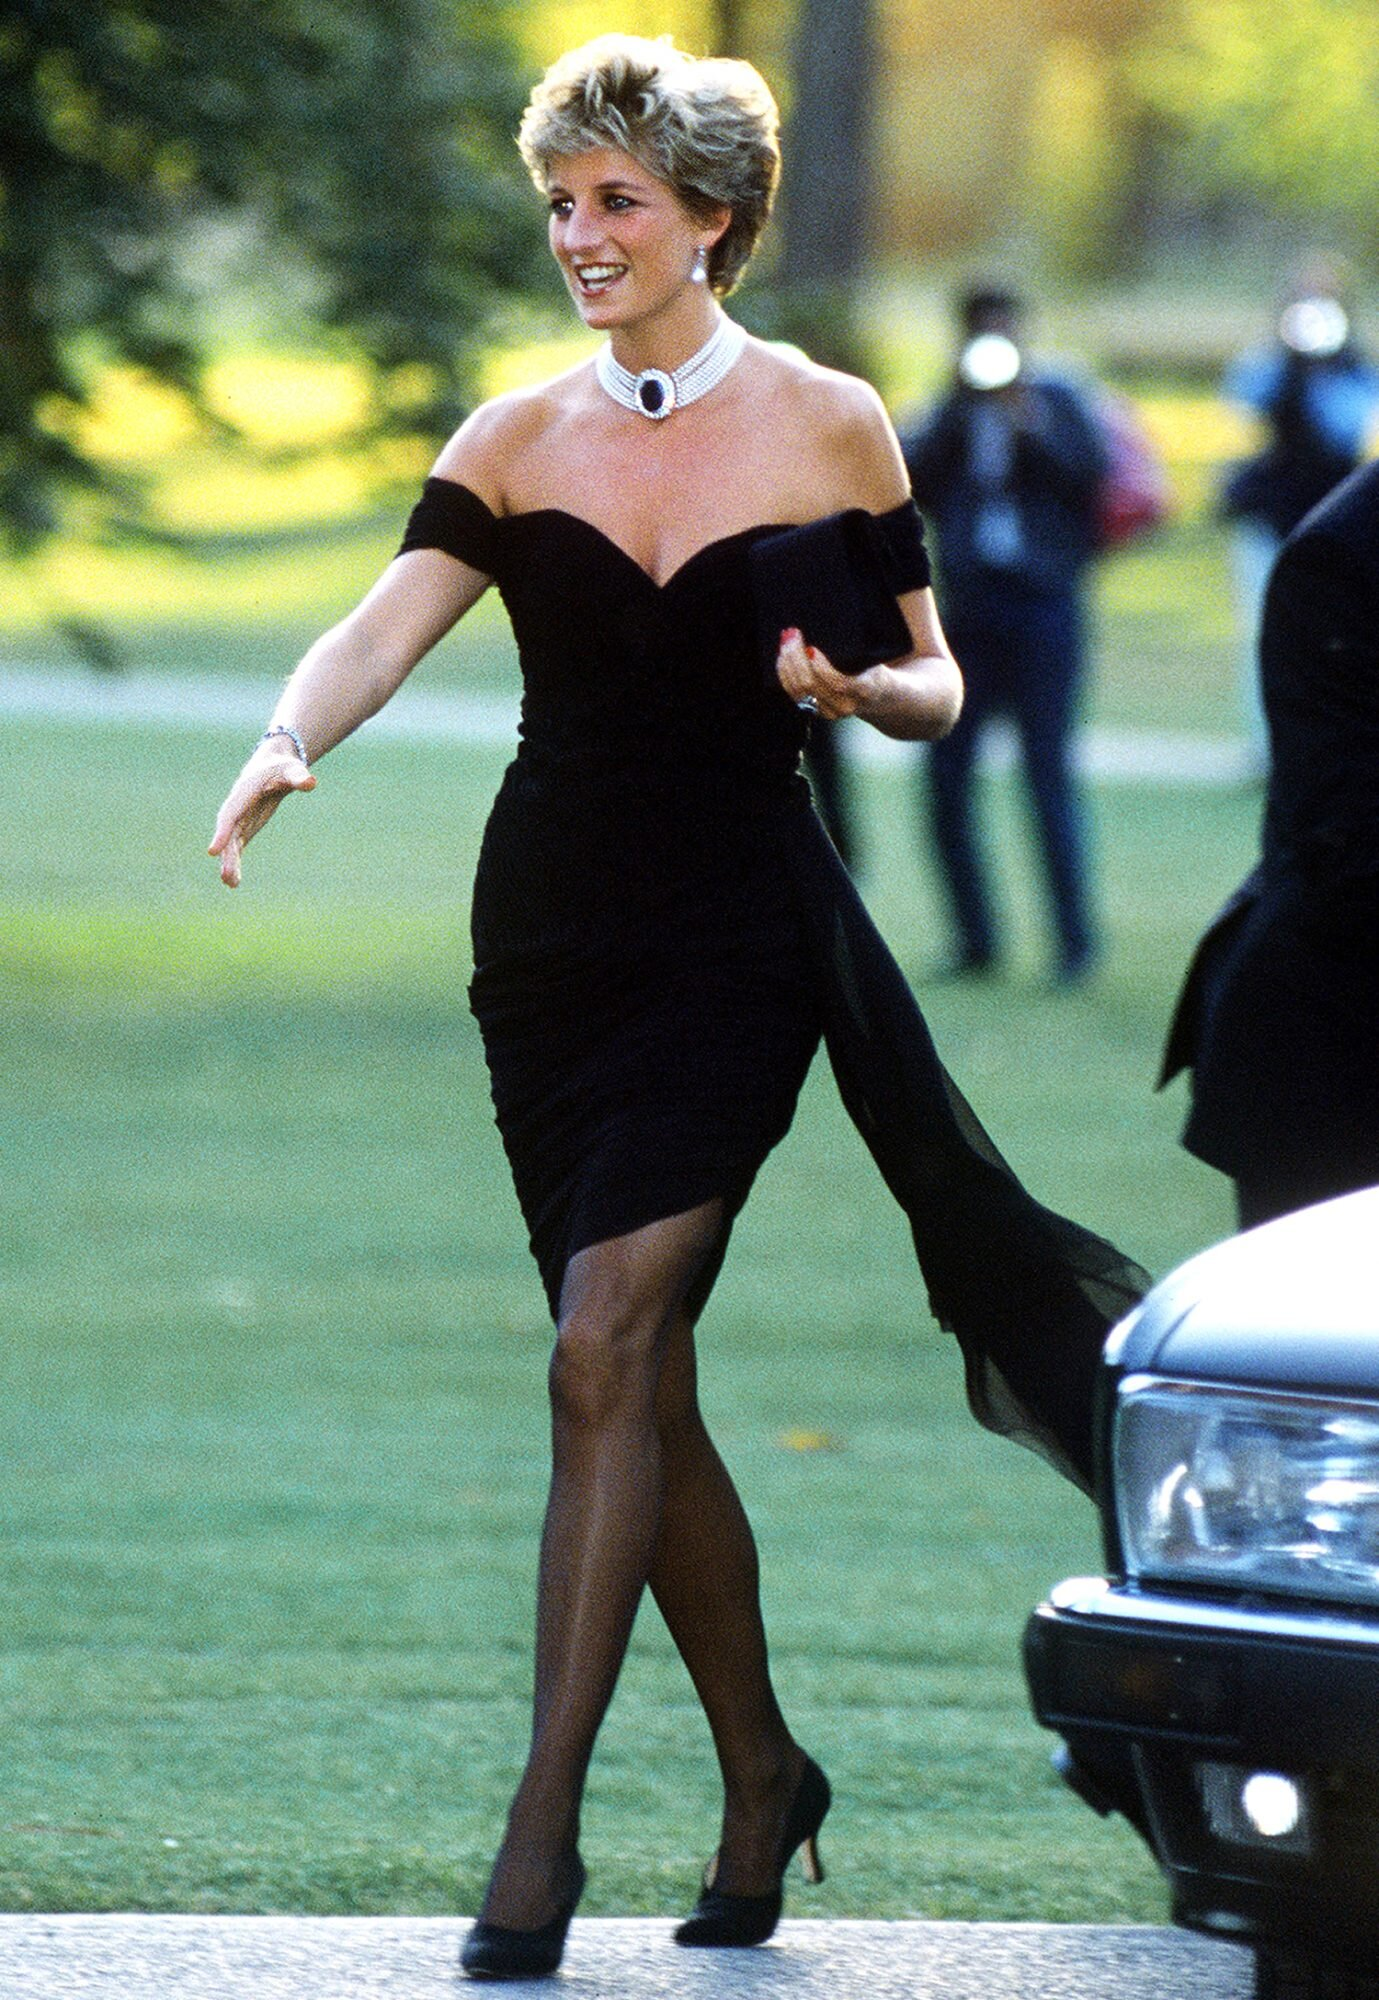 Princess Diana's 'Revenge' outfits